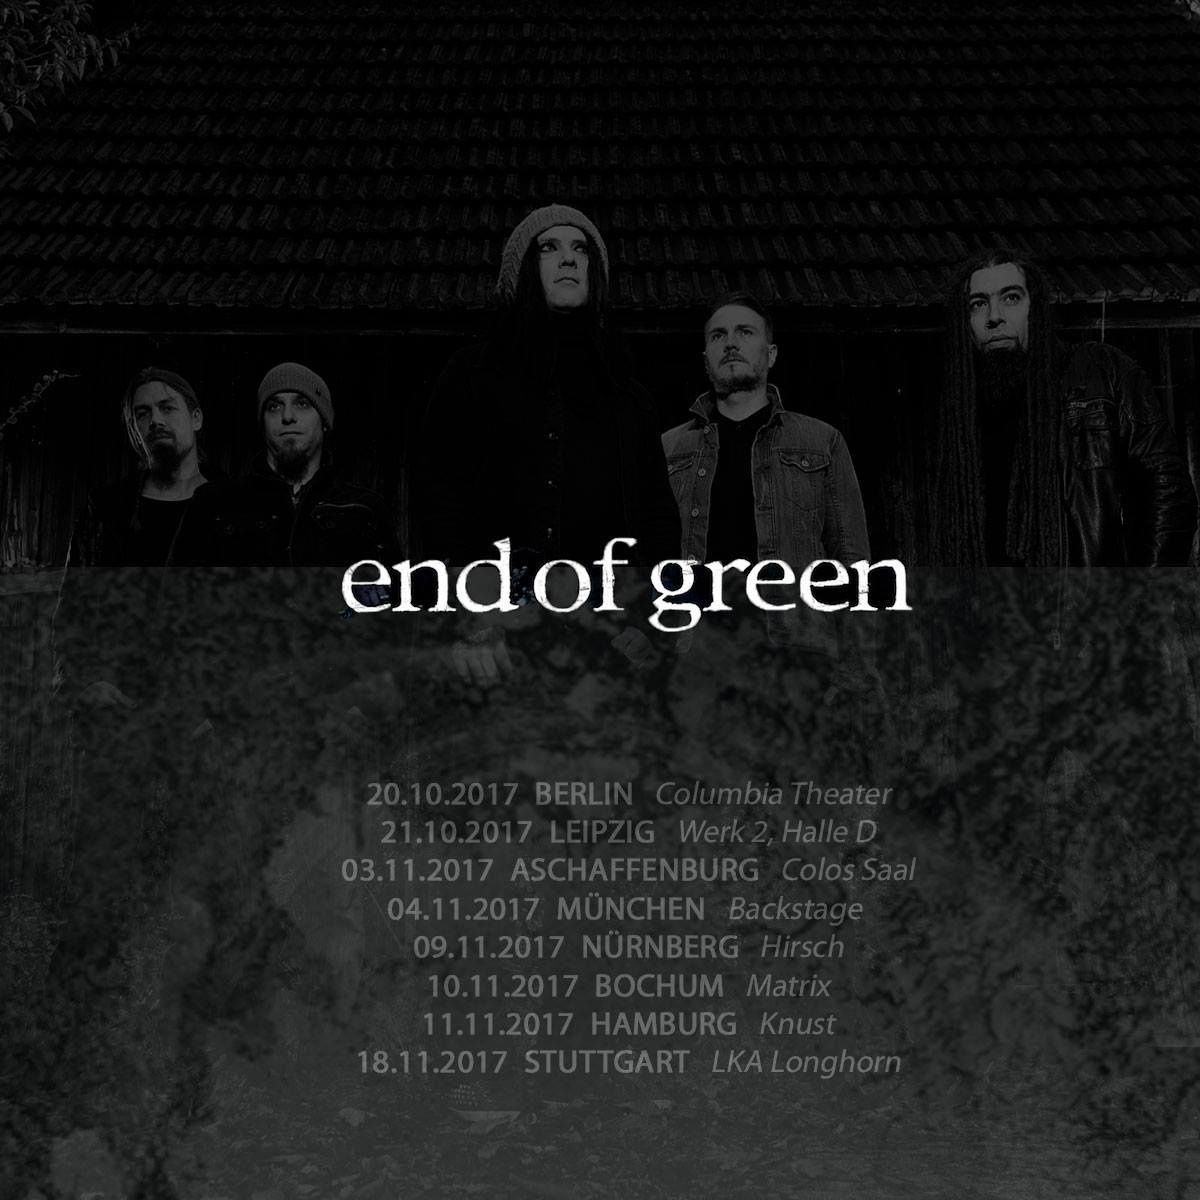 News from end of green